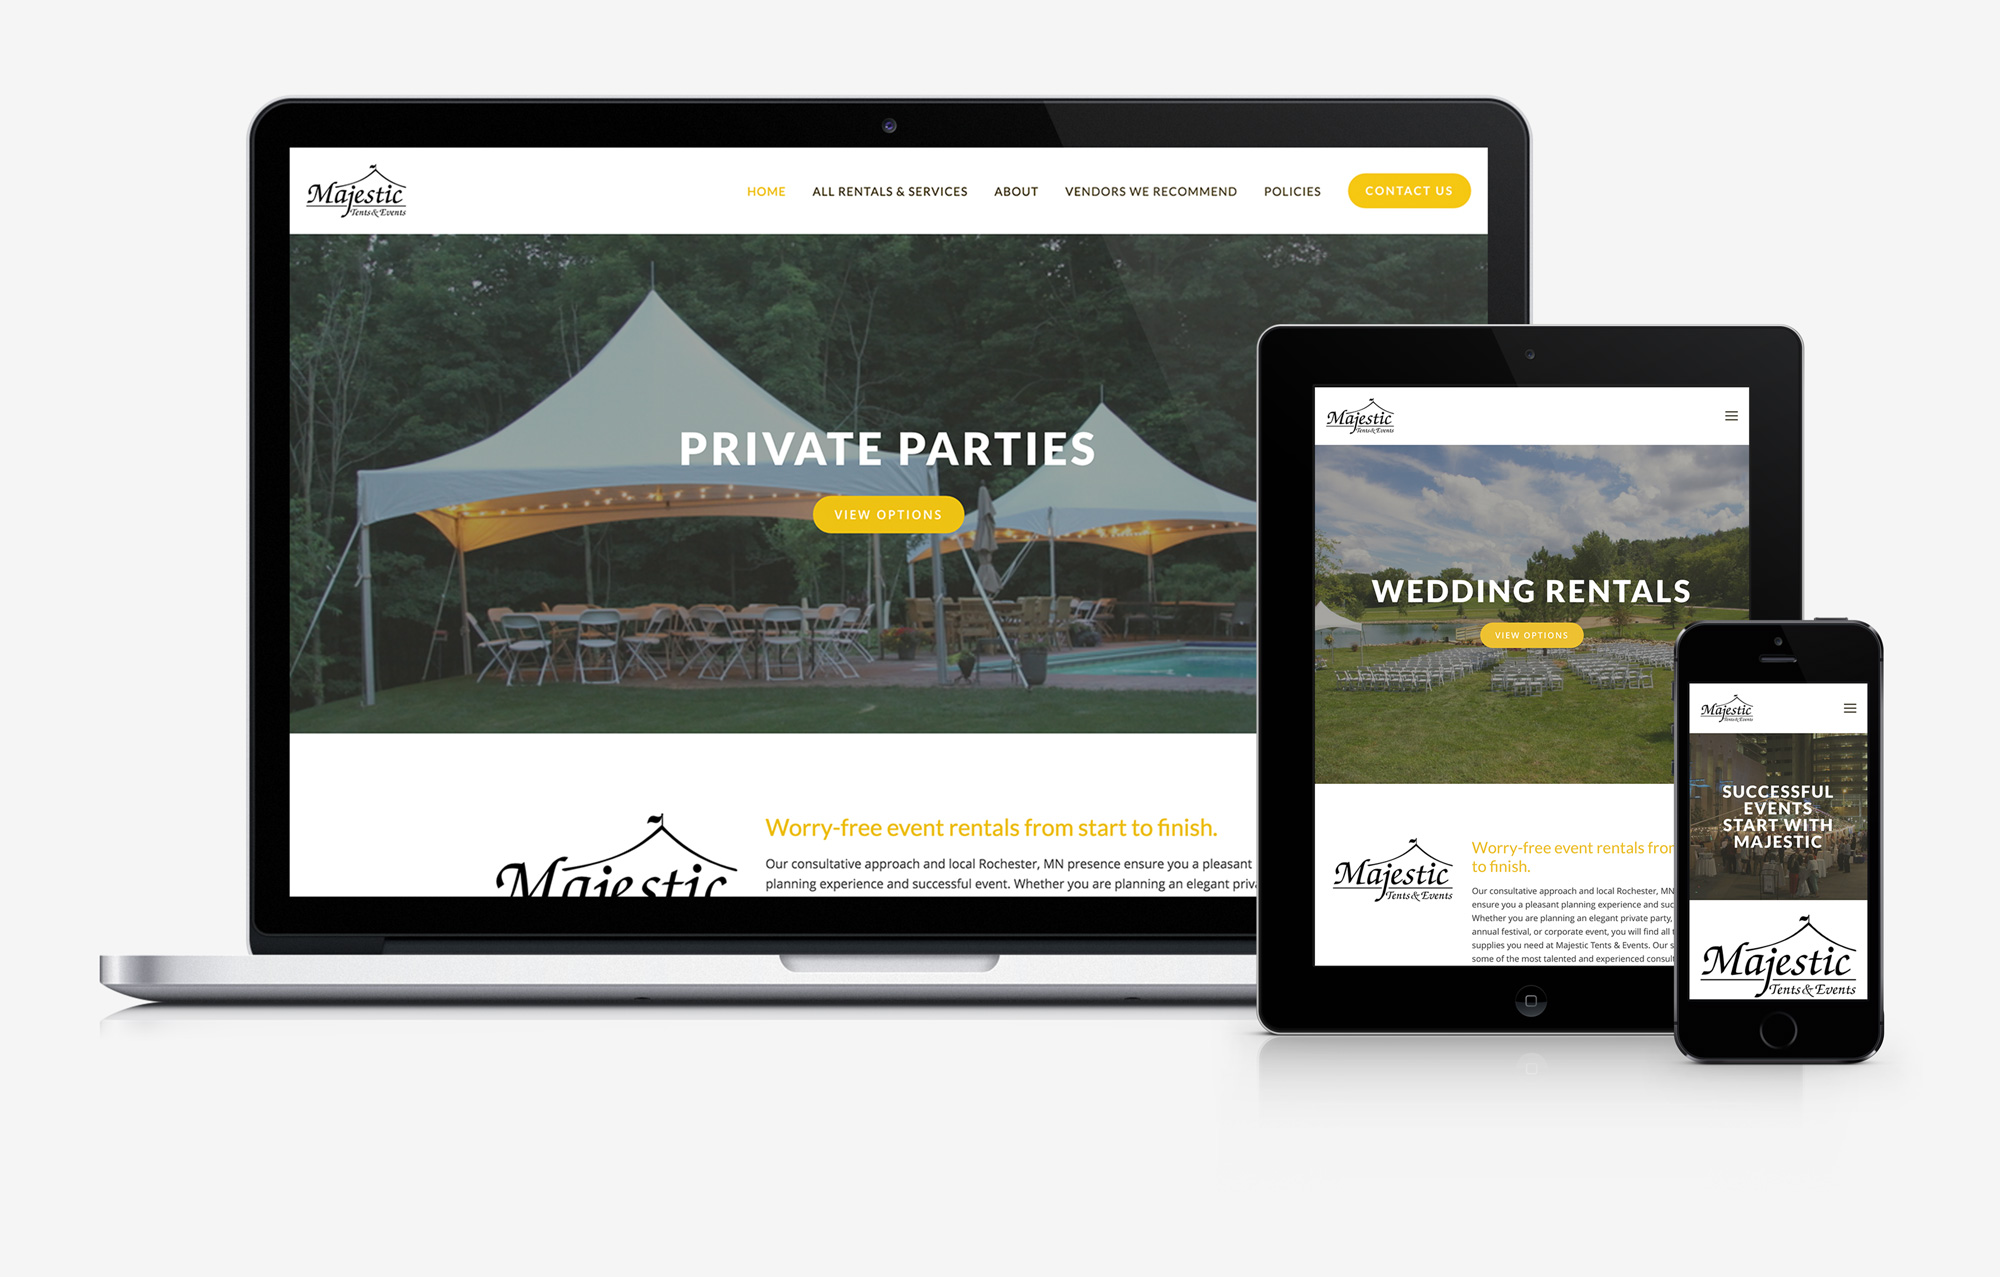 Majestic Tents and Events responsive website design by PixelPress